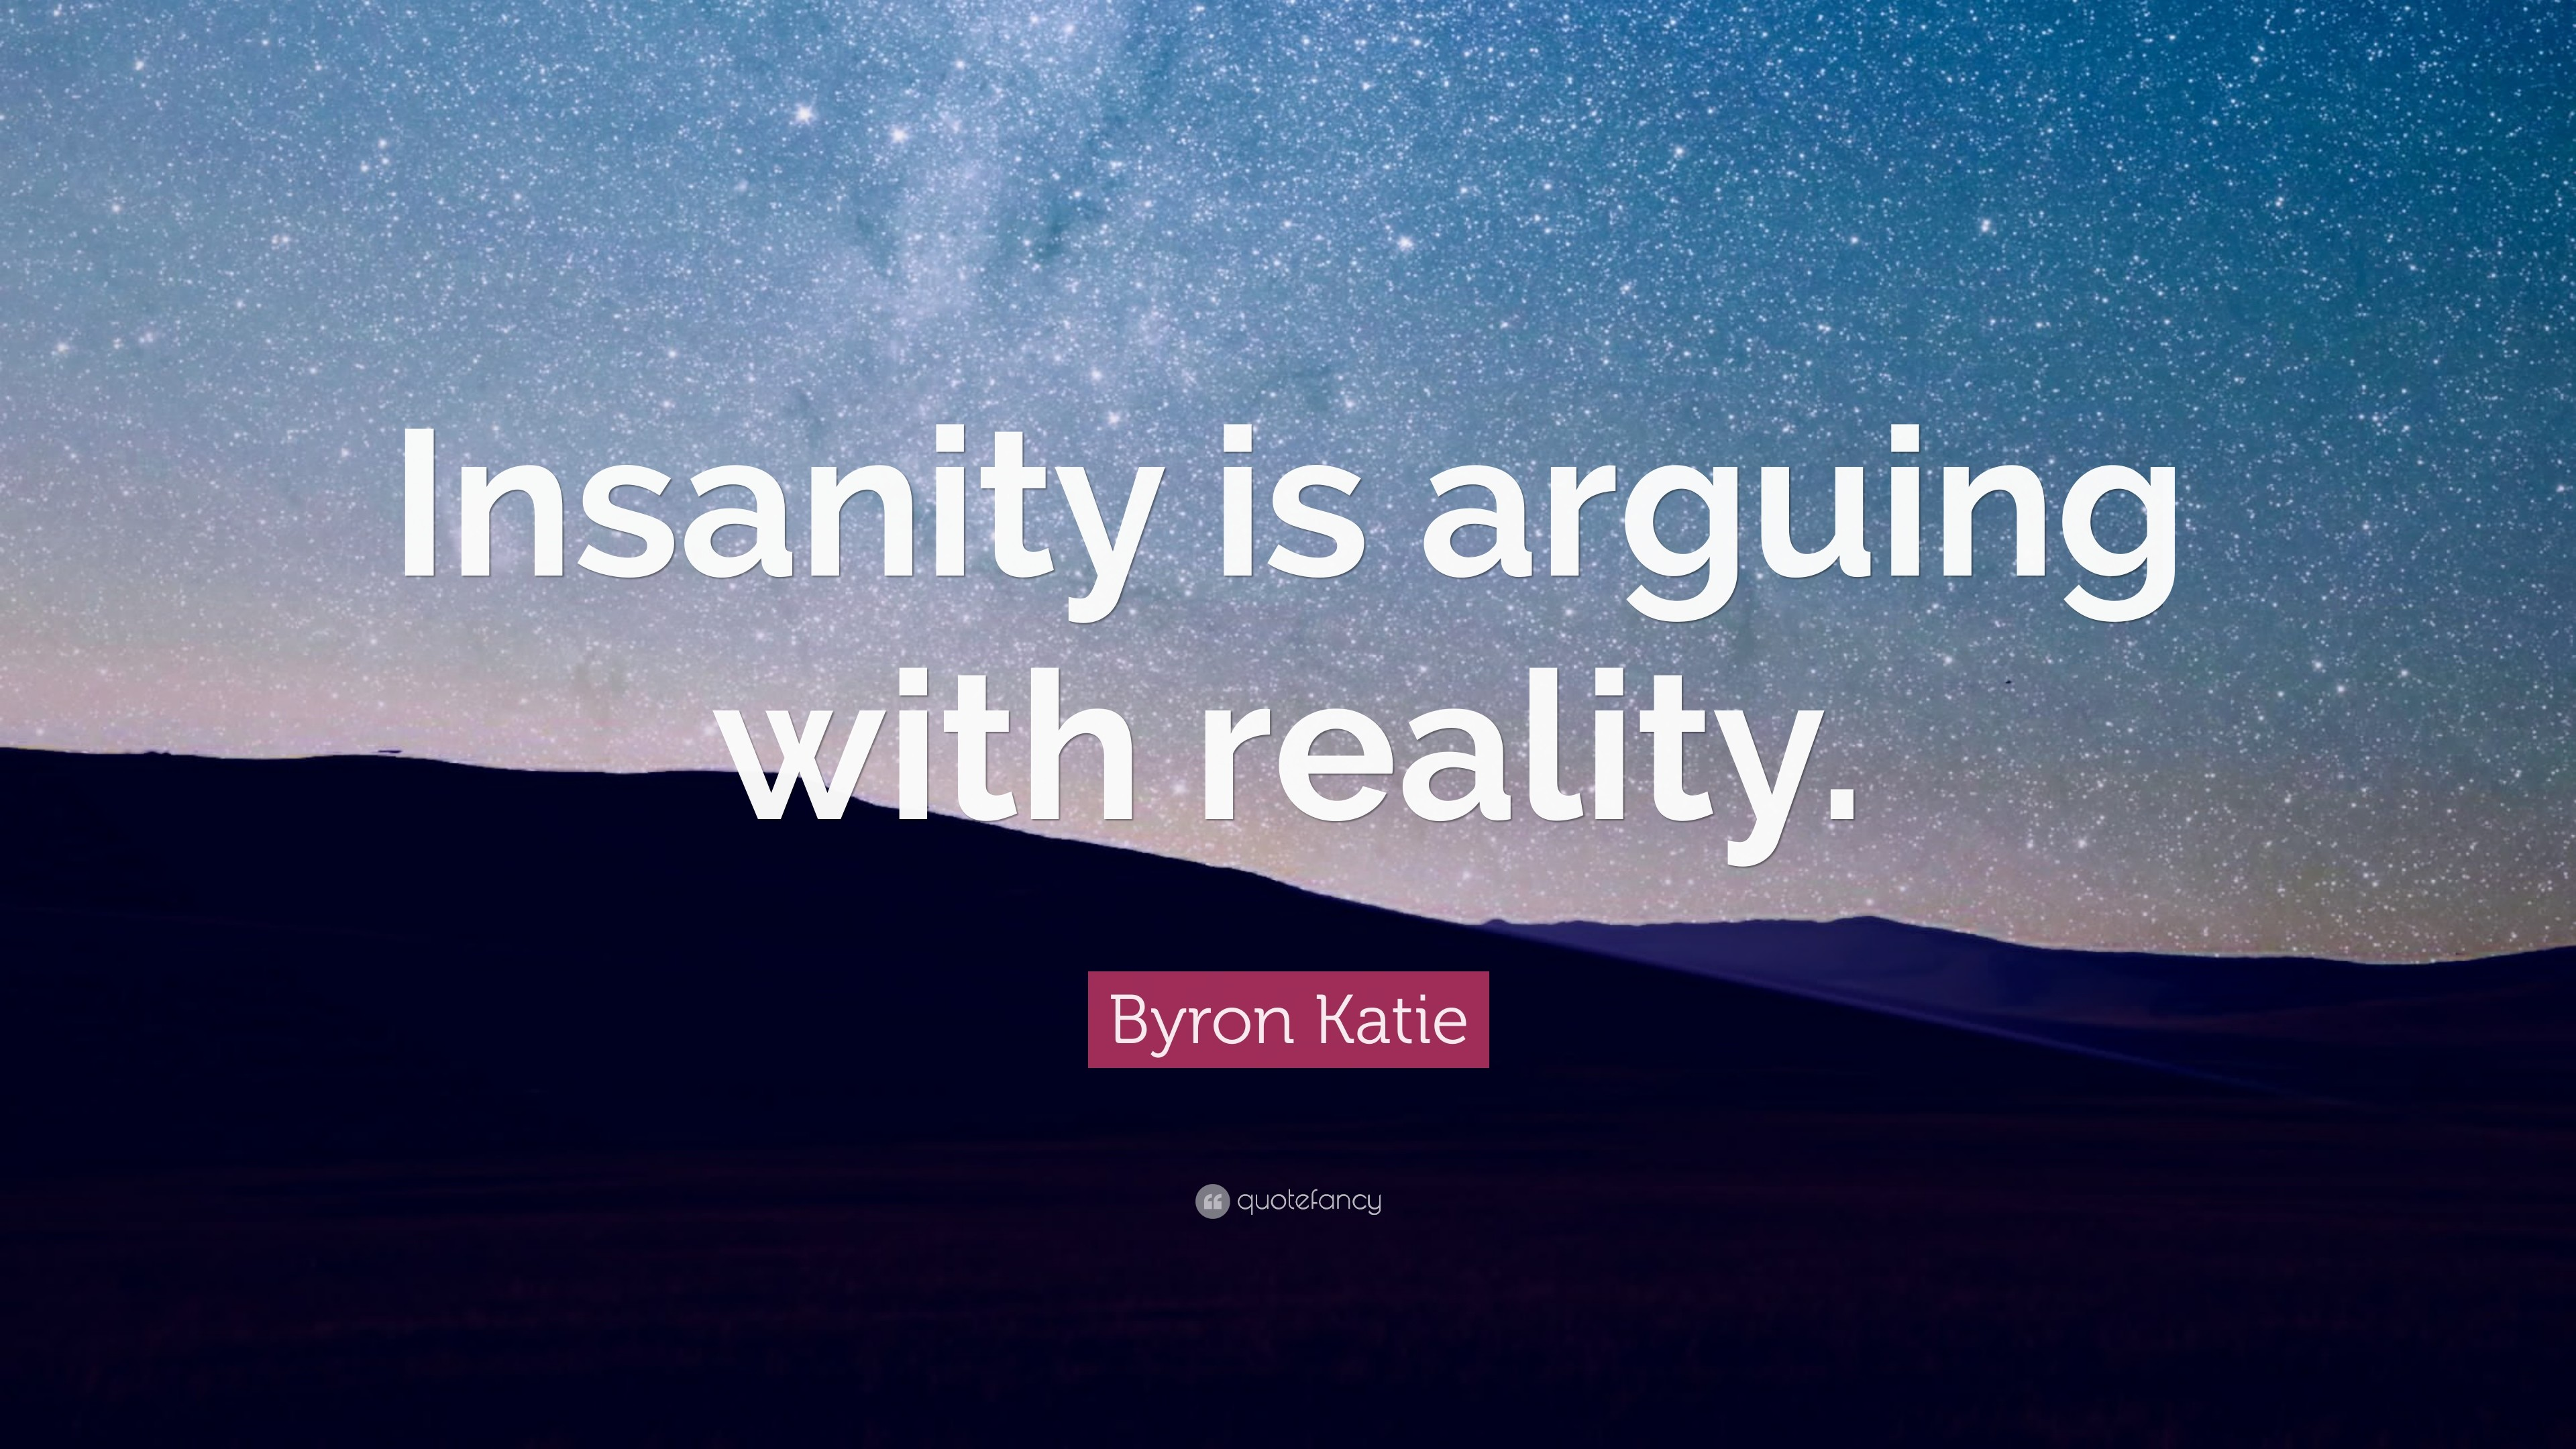 Byron Katie Quotes Insanity Wallpapers 59 Images